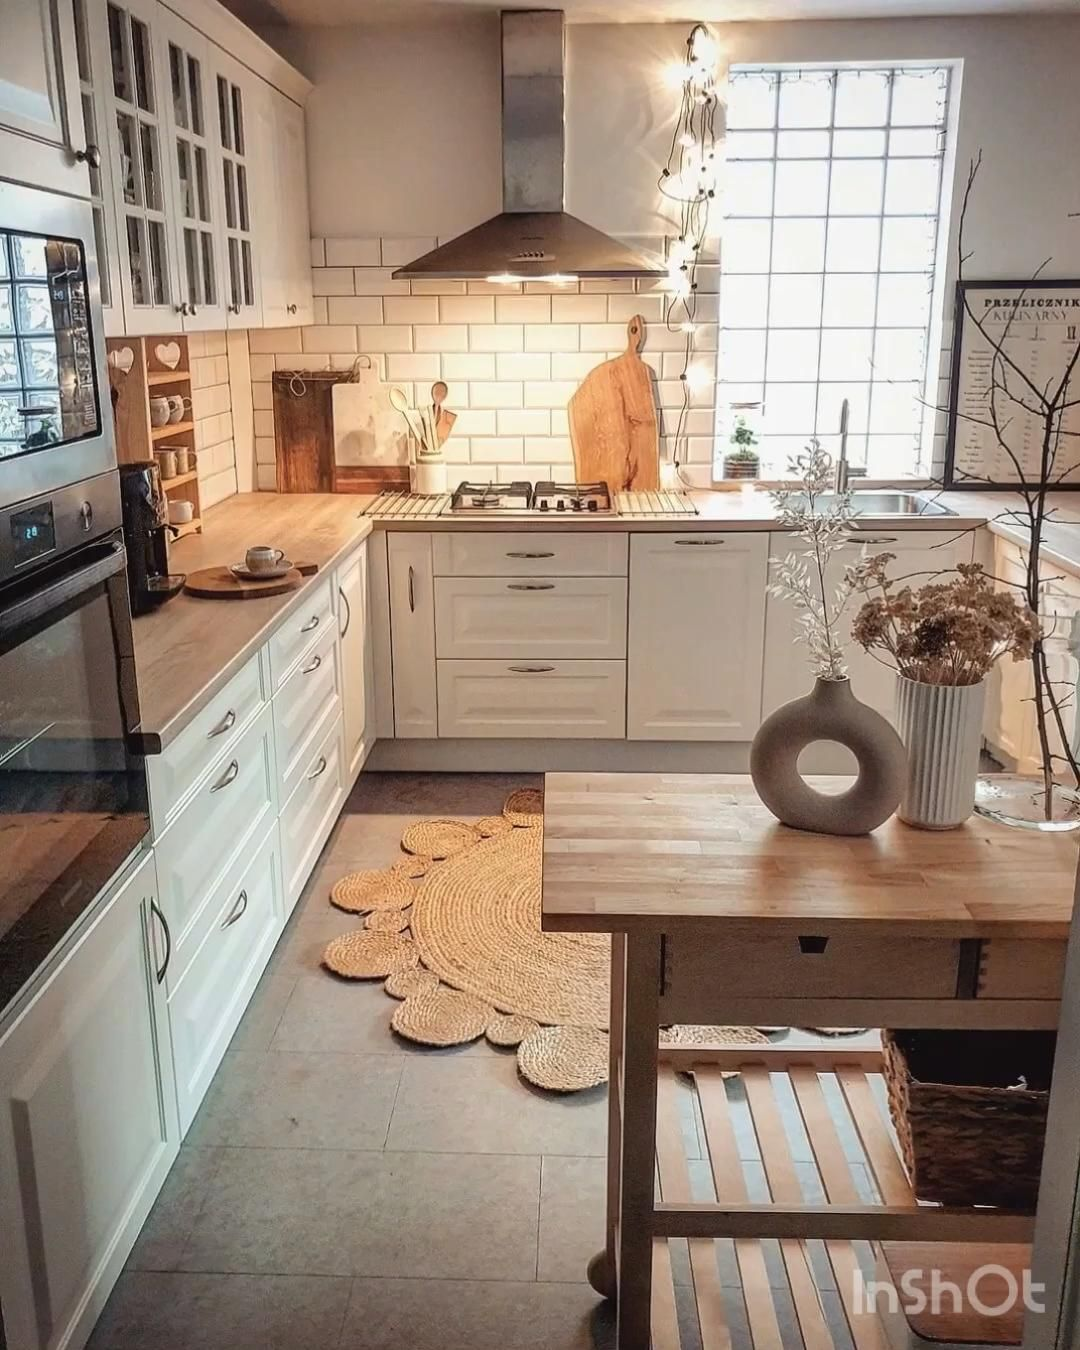 Kitchen Decor Stunning Home Decor for Your Inspiration